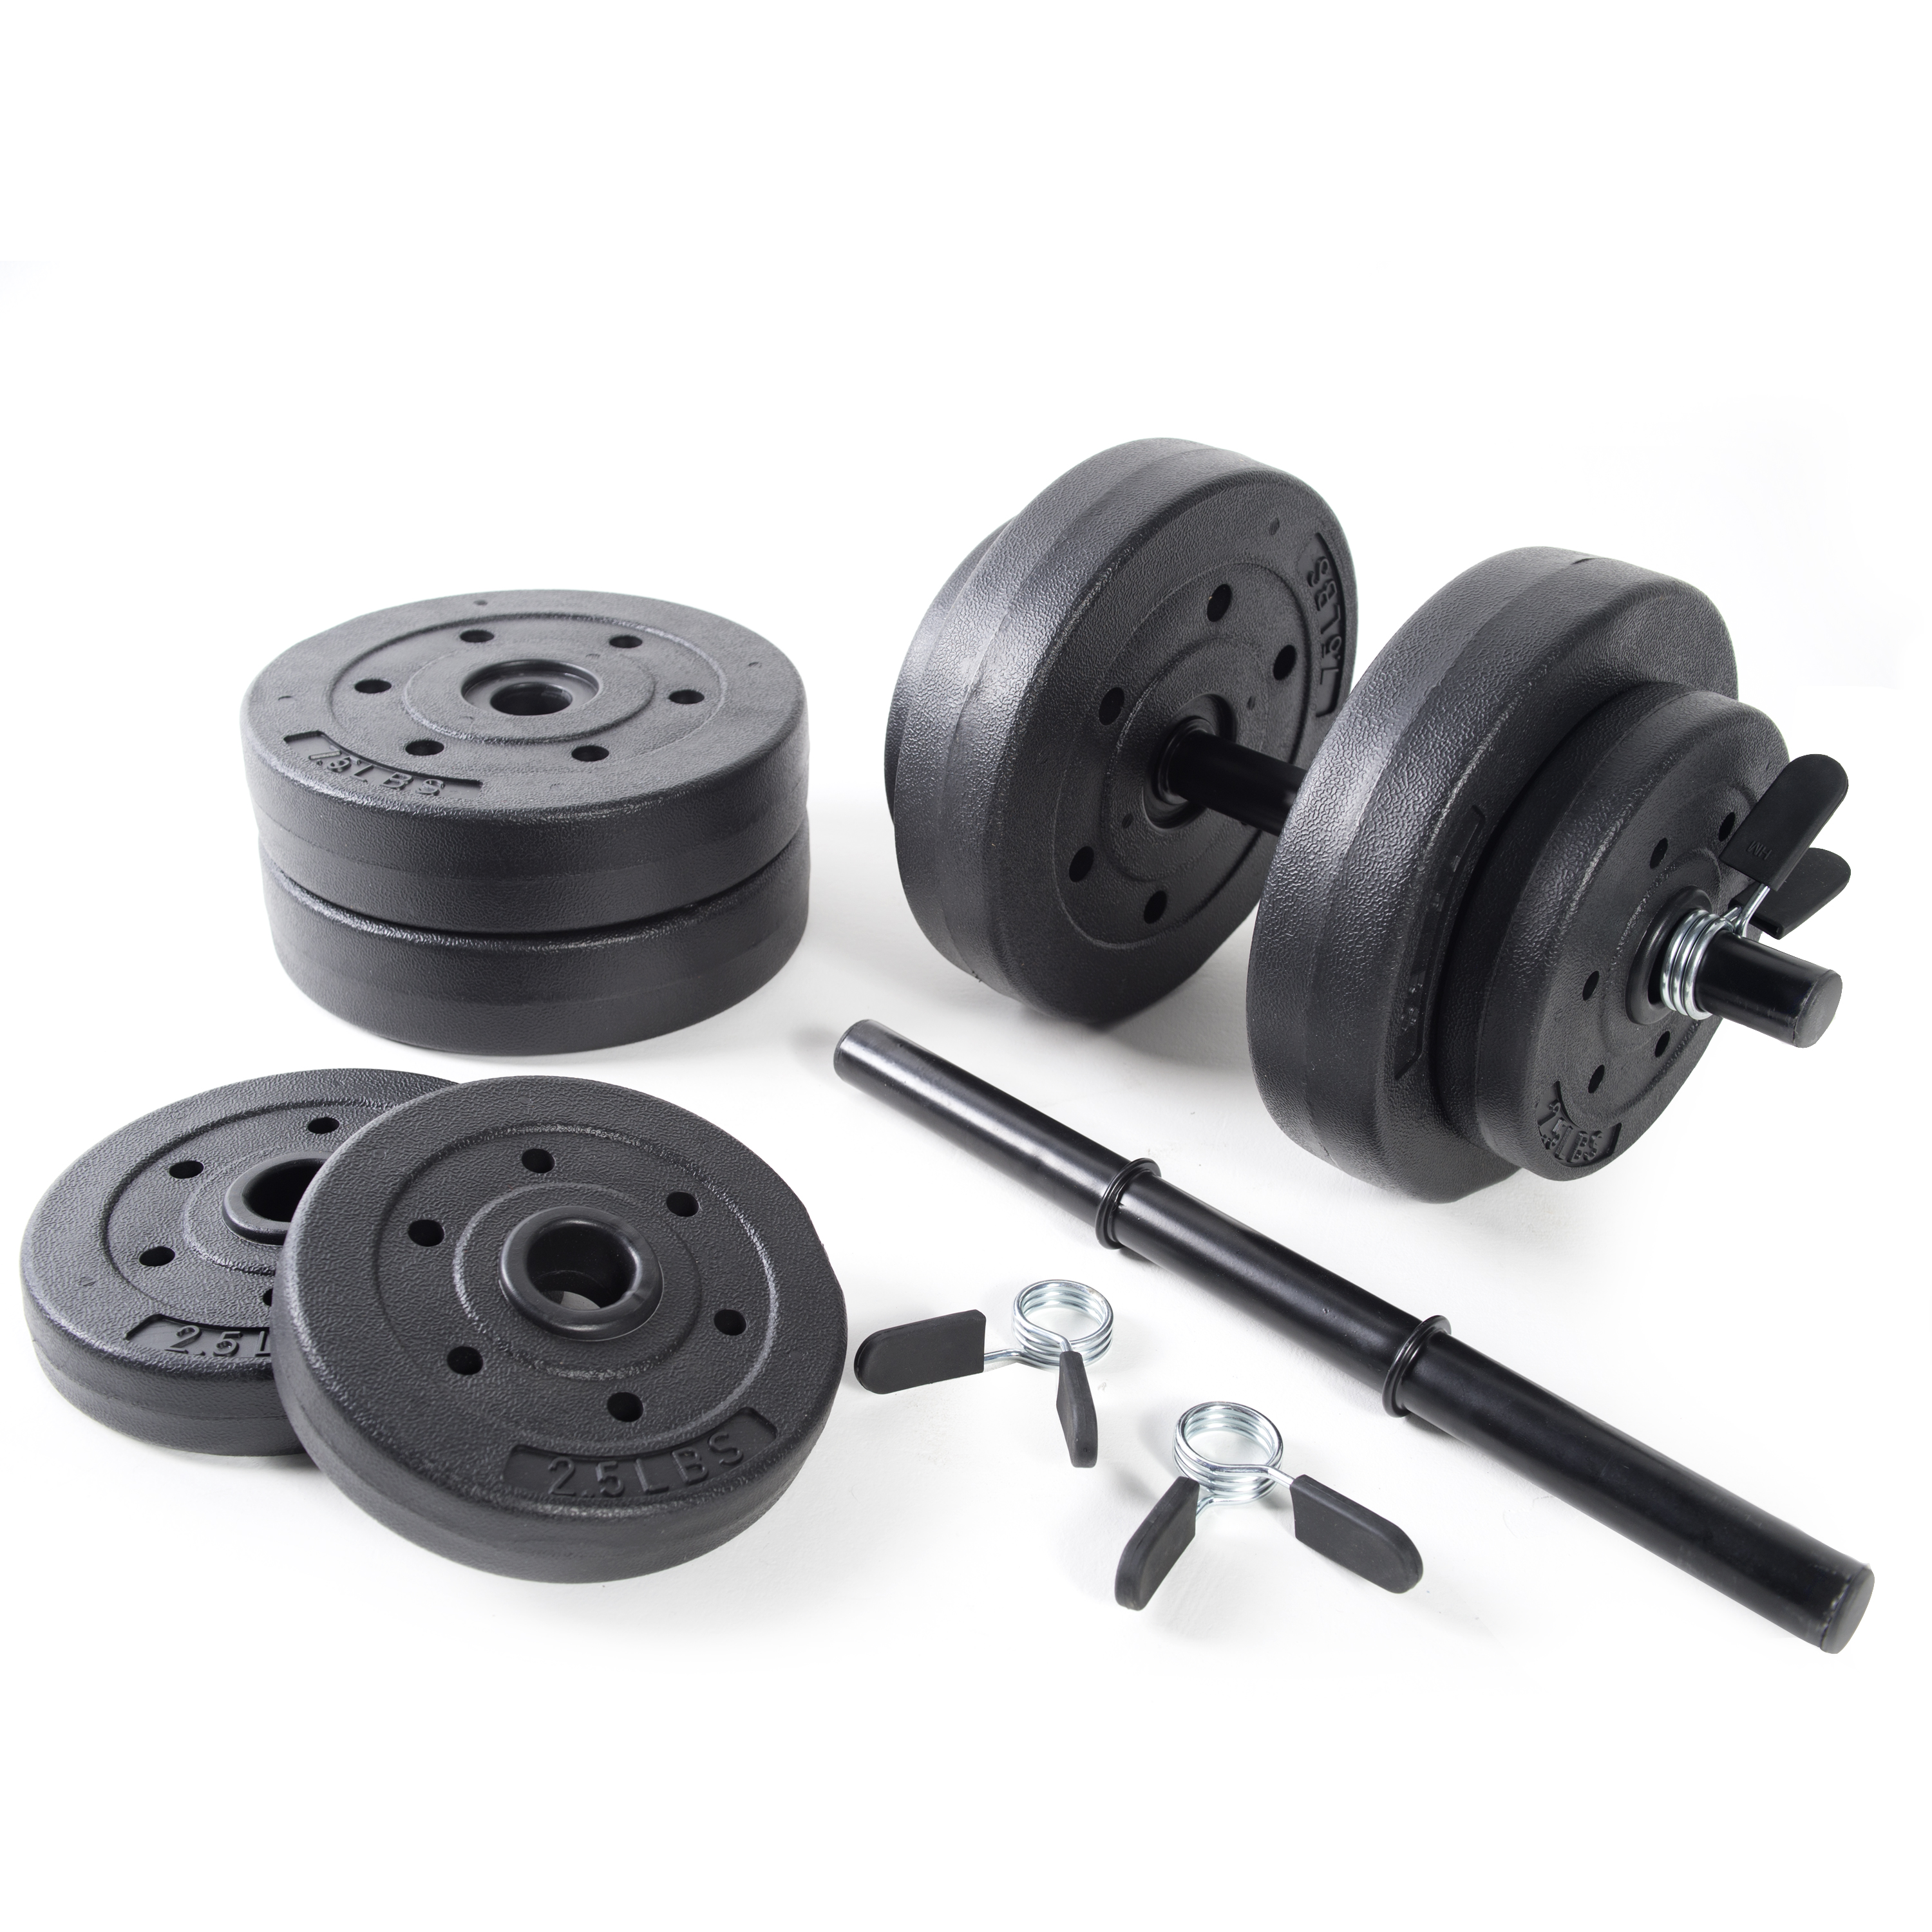 Swell Golds Gym Vinyl Dumbbell Set 40 Lbs Walmart Com Gmtry Best Dining Table And Chair Ideas Images Gmtryco